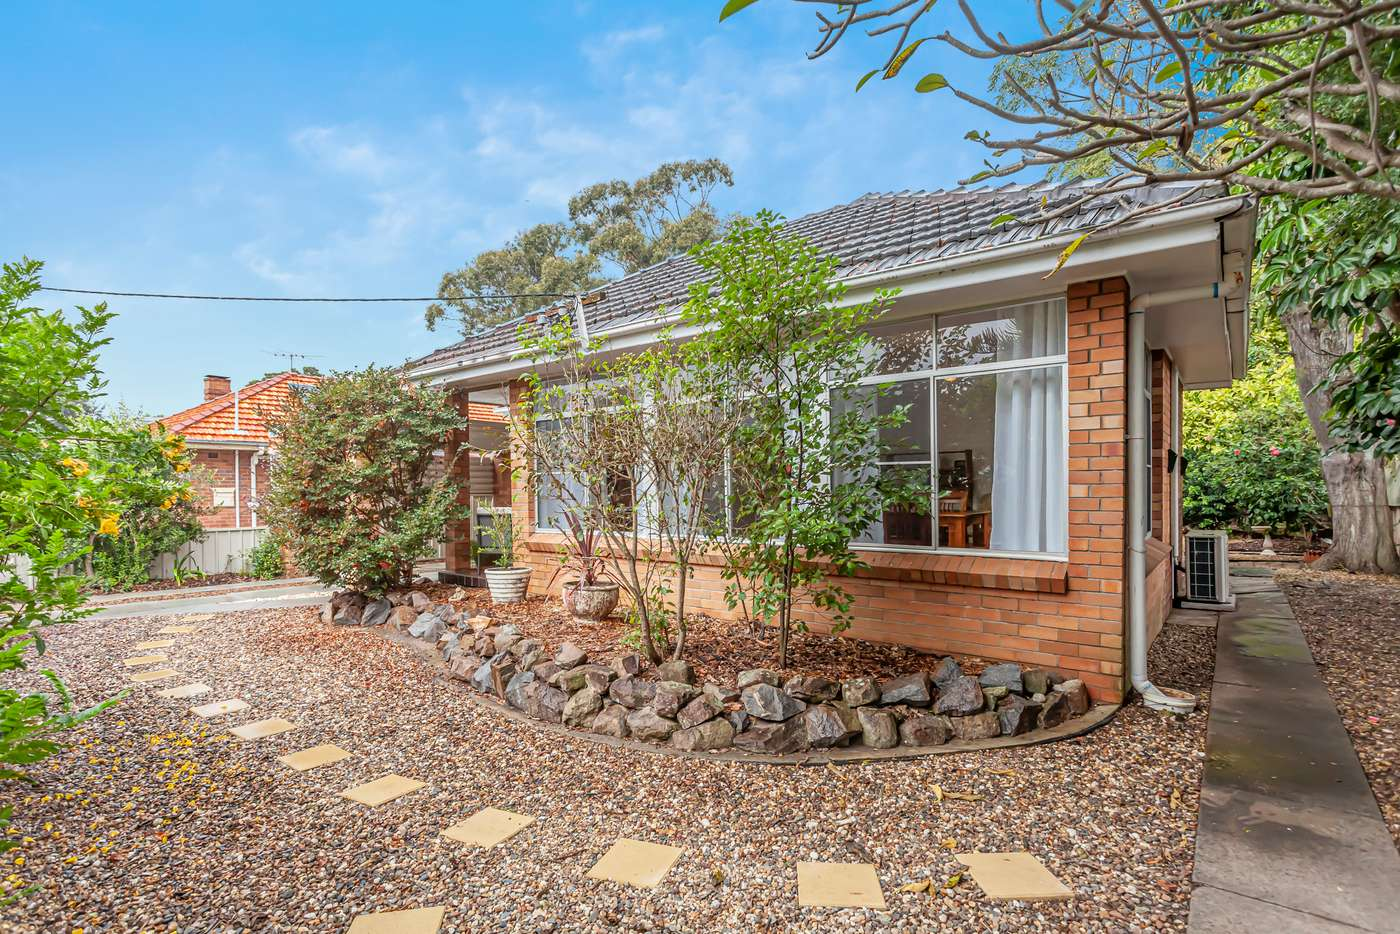 Main view of Homely house listing, 19 Kinross Street, Raymond Terrace NSW 2324